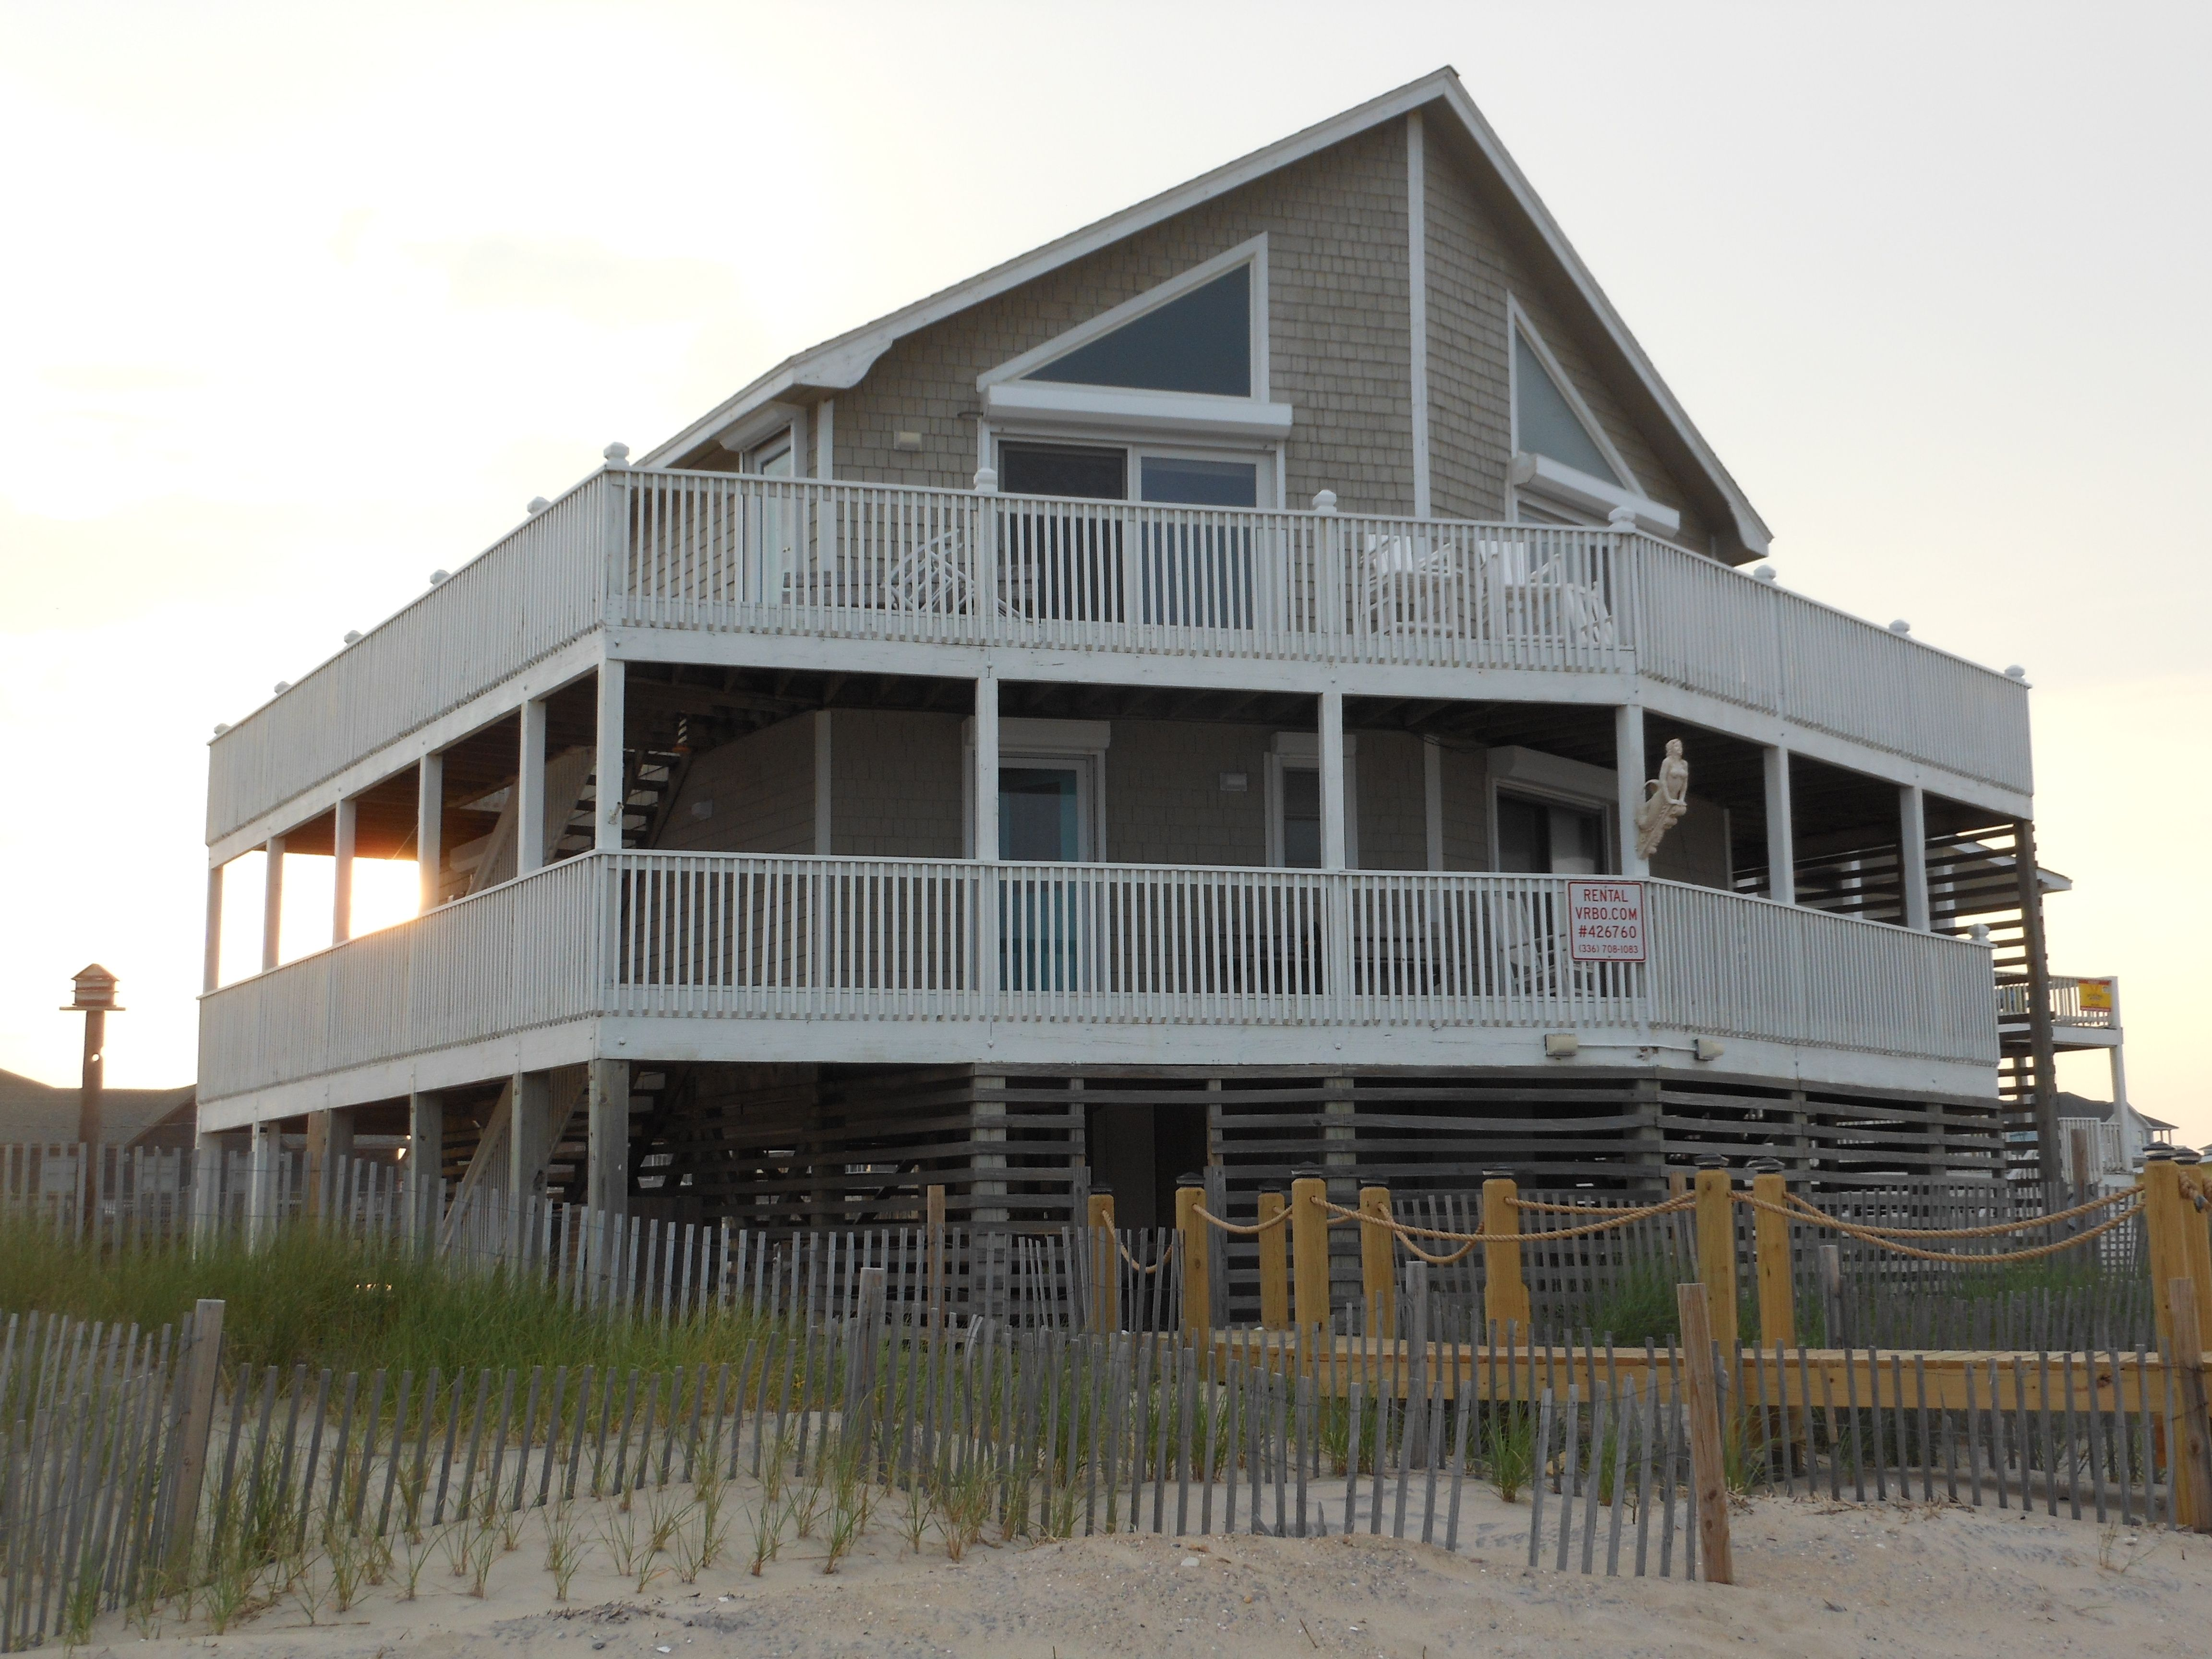 Stupendous Mermaids Tears Rodanthe Nc Beach Cottages House Styles Home Interior And Landscaping Ponolsignezvosmurscom